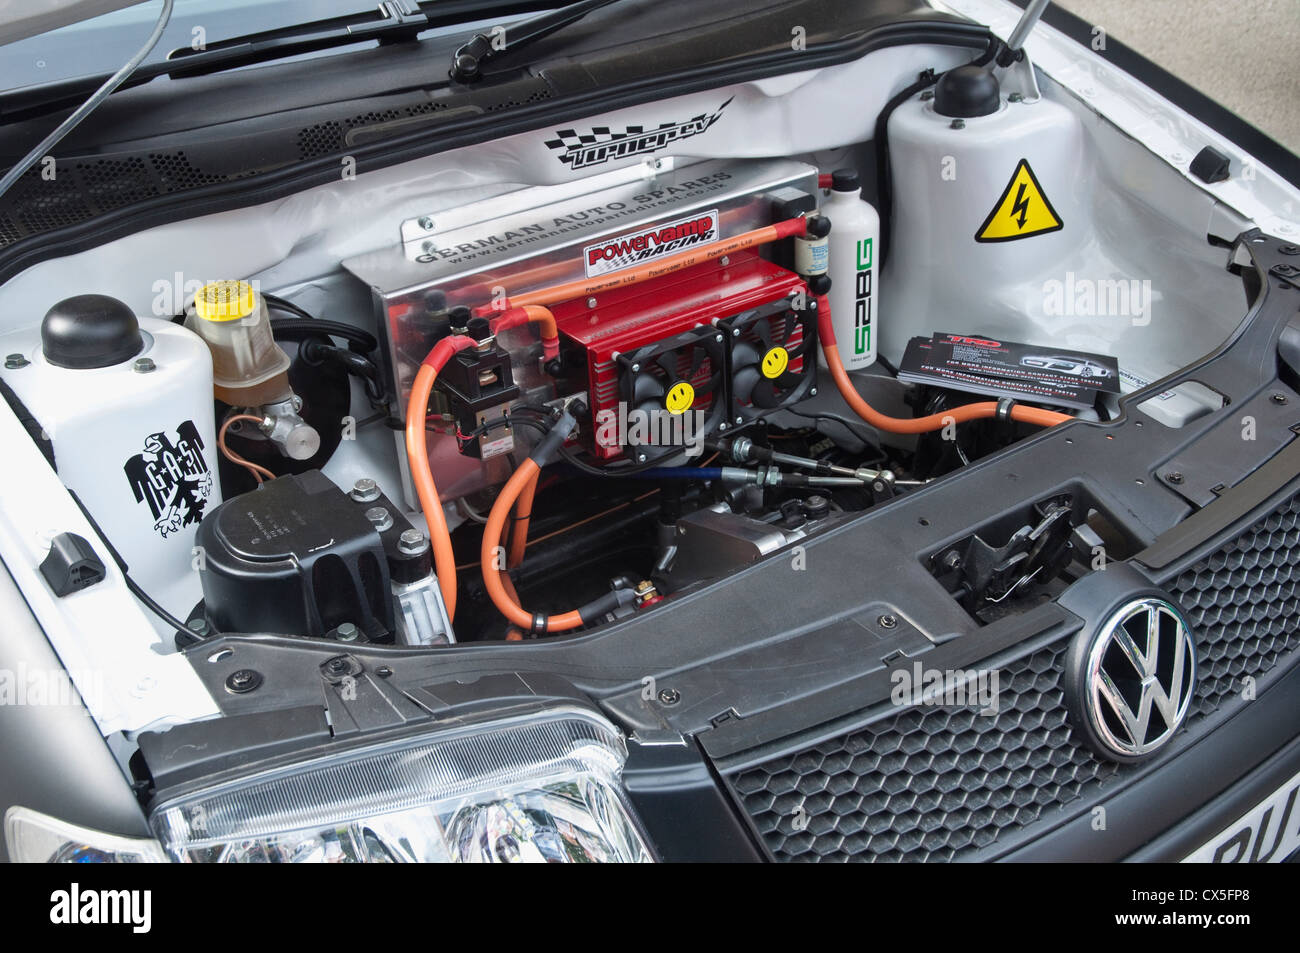 Car with bonnet up showing electric VW engine on display at an Eco Car Exhibition. UK. - Stock Image